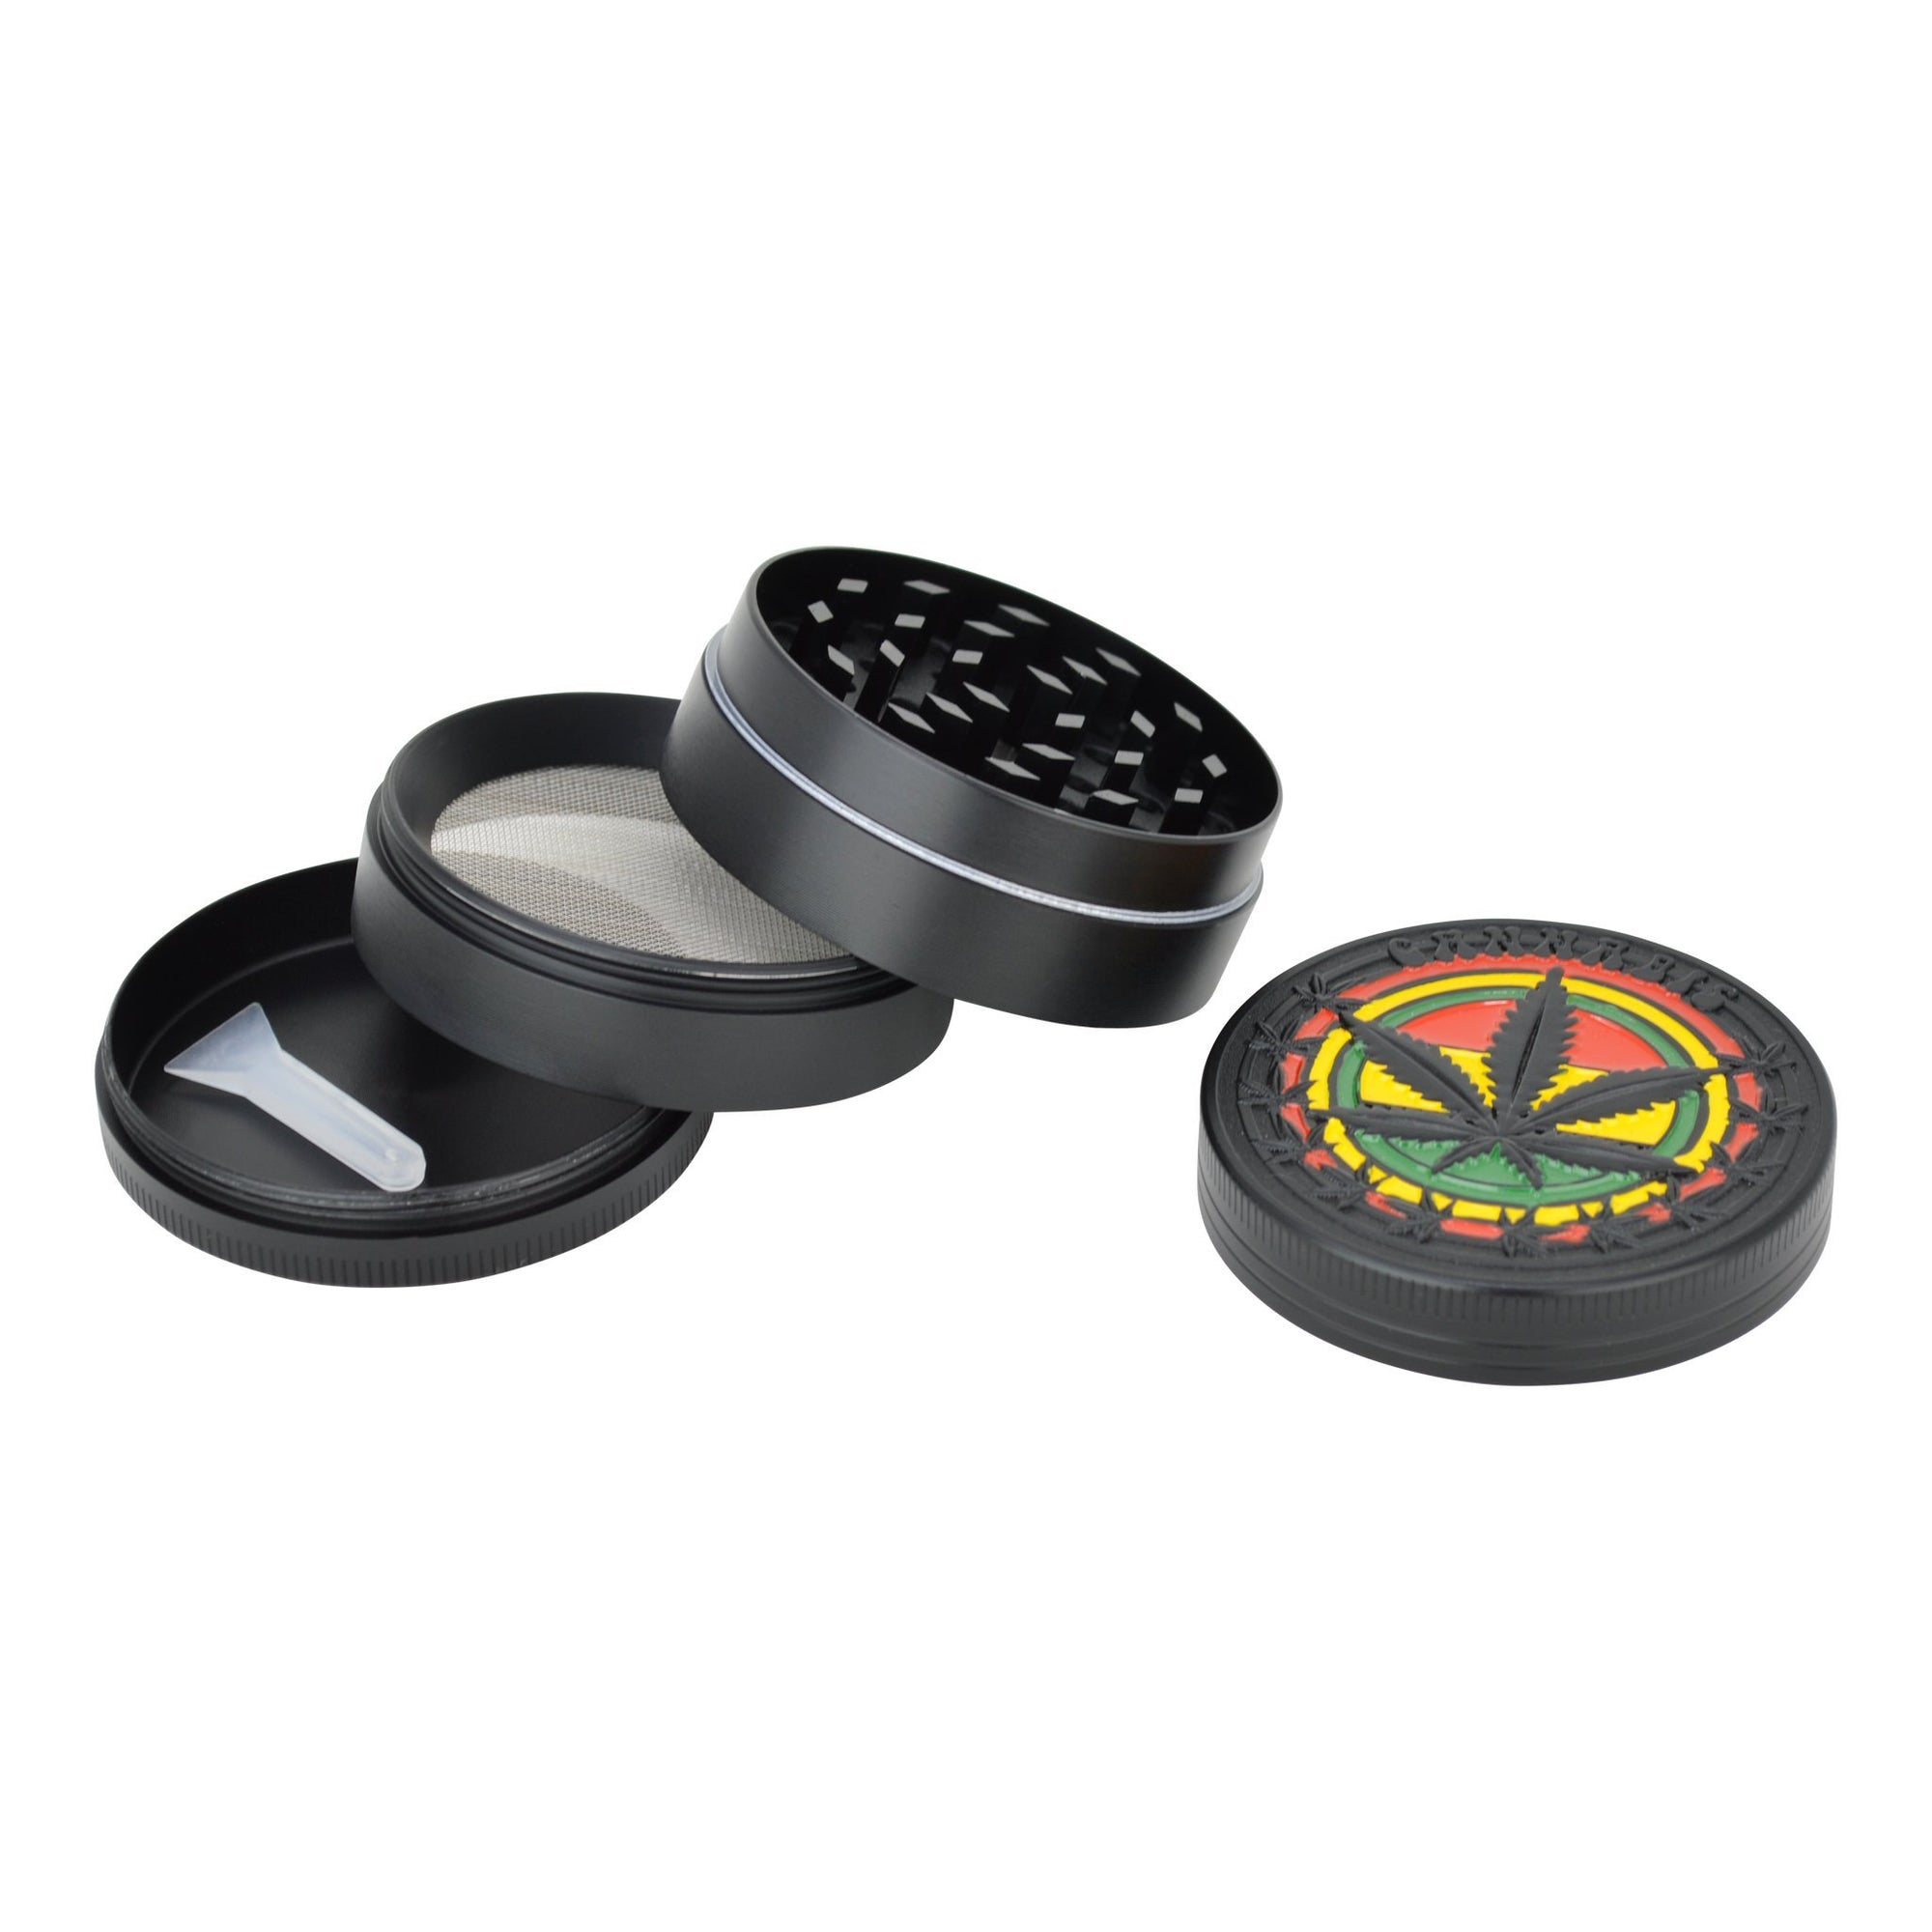 50mm round 4-part metal grinder smoking accessory with kiefcatcher with rasta weed leaf design on lid